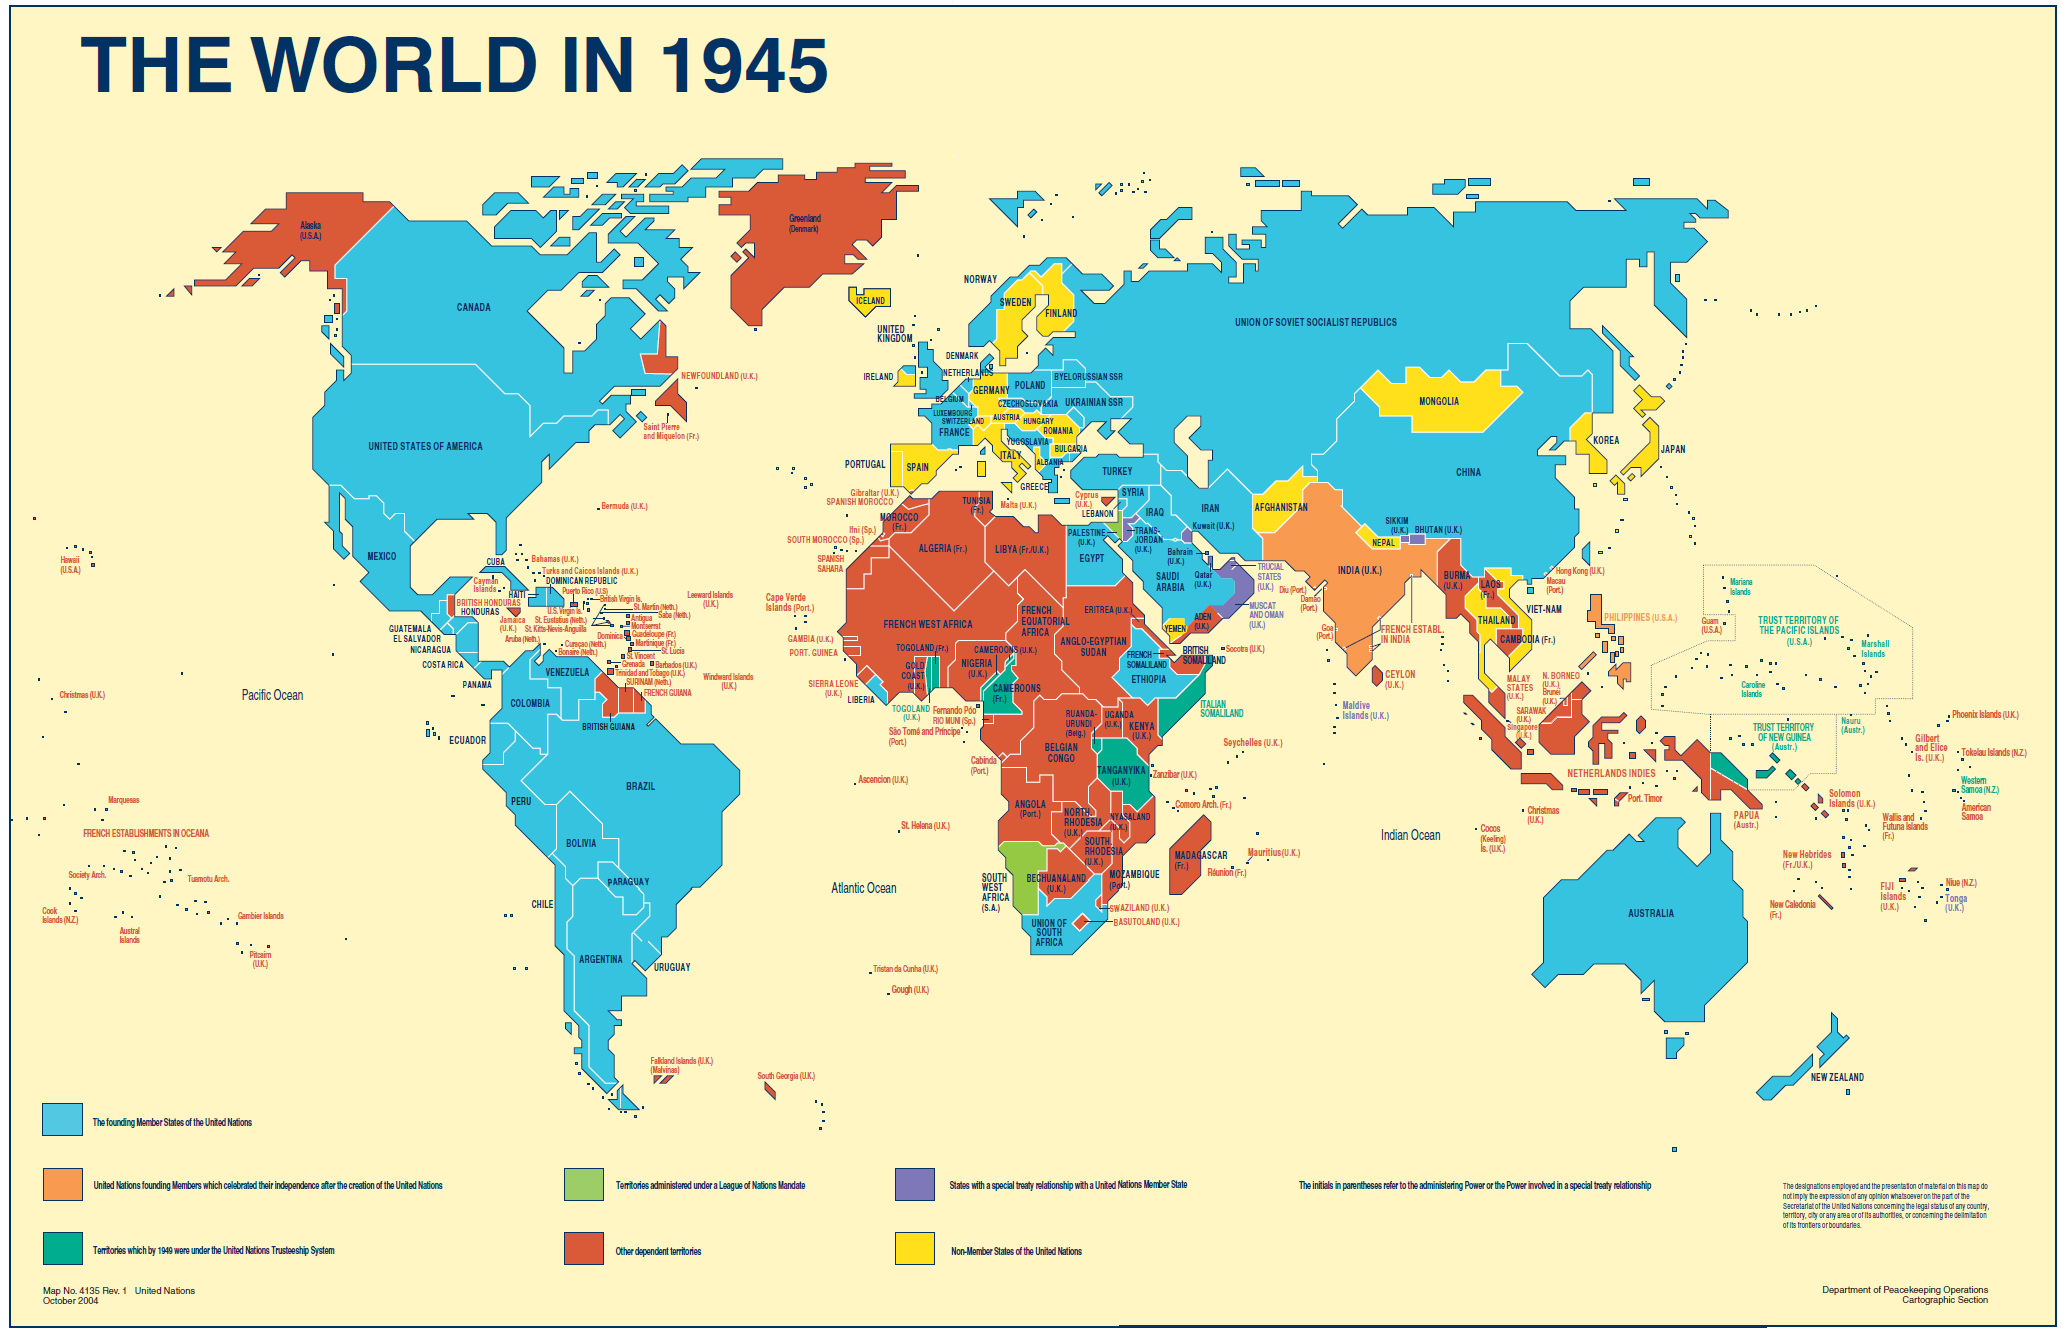 The world in 1945 map by un map ww2 interesting maps pinterest the world in 1945 map by un map ww2 gumiabroncs Gallery